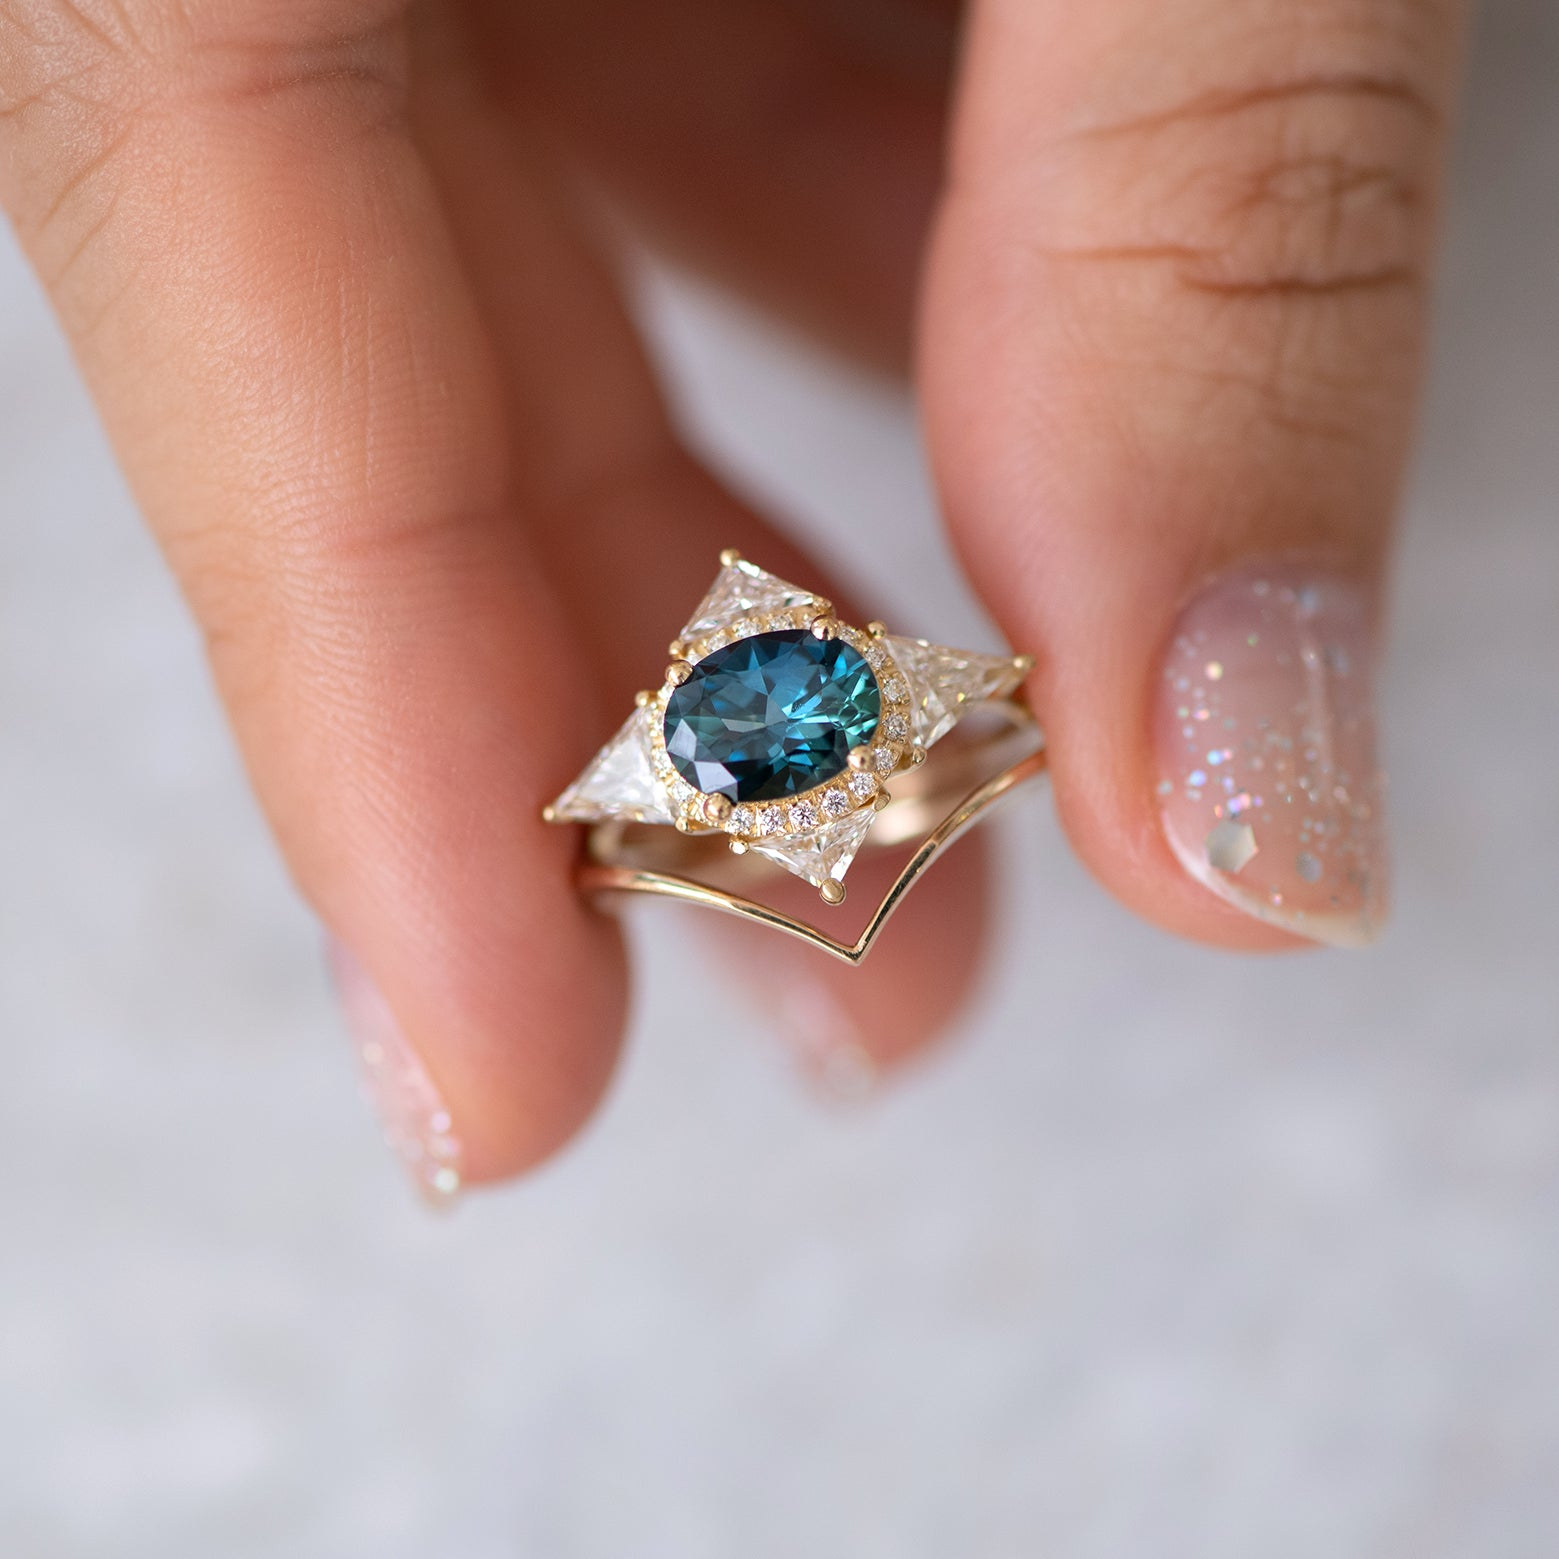 Teal Sapphire Deco Ring with Triangle Diamonds top view